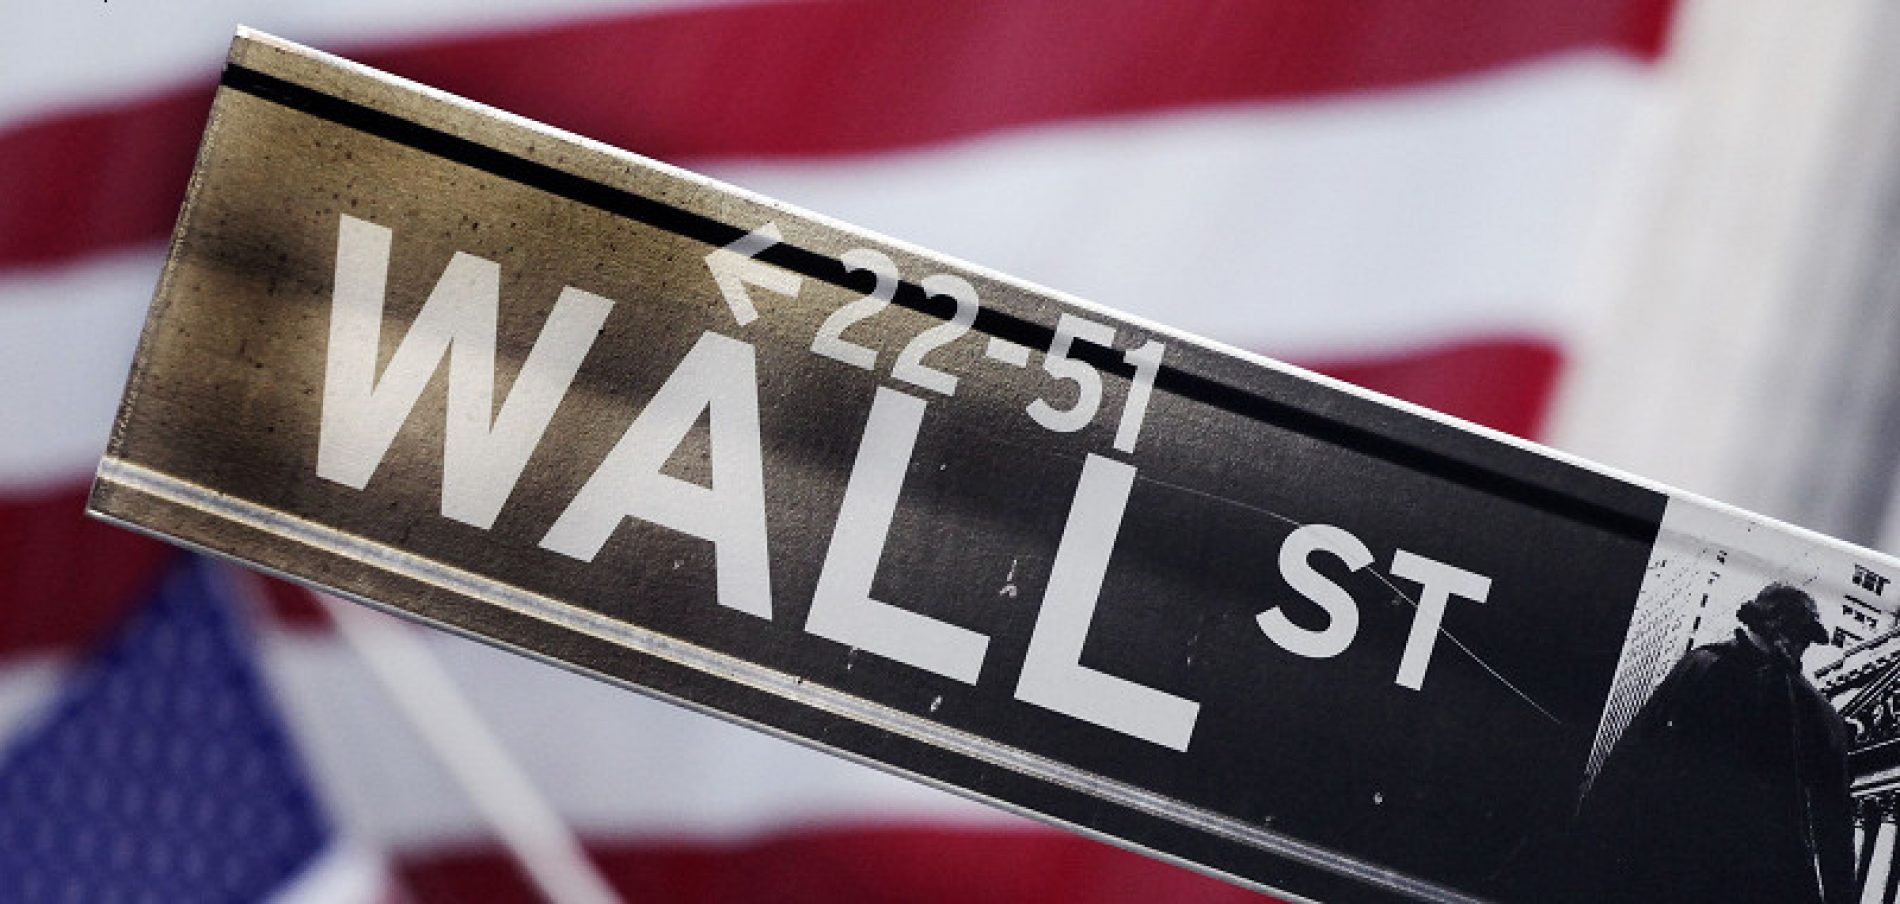 Na Wall Streetu novi rekordi S&P 500 i Dow Jones indeksa